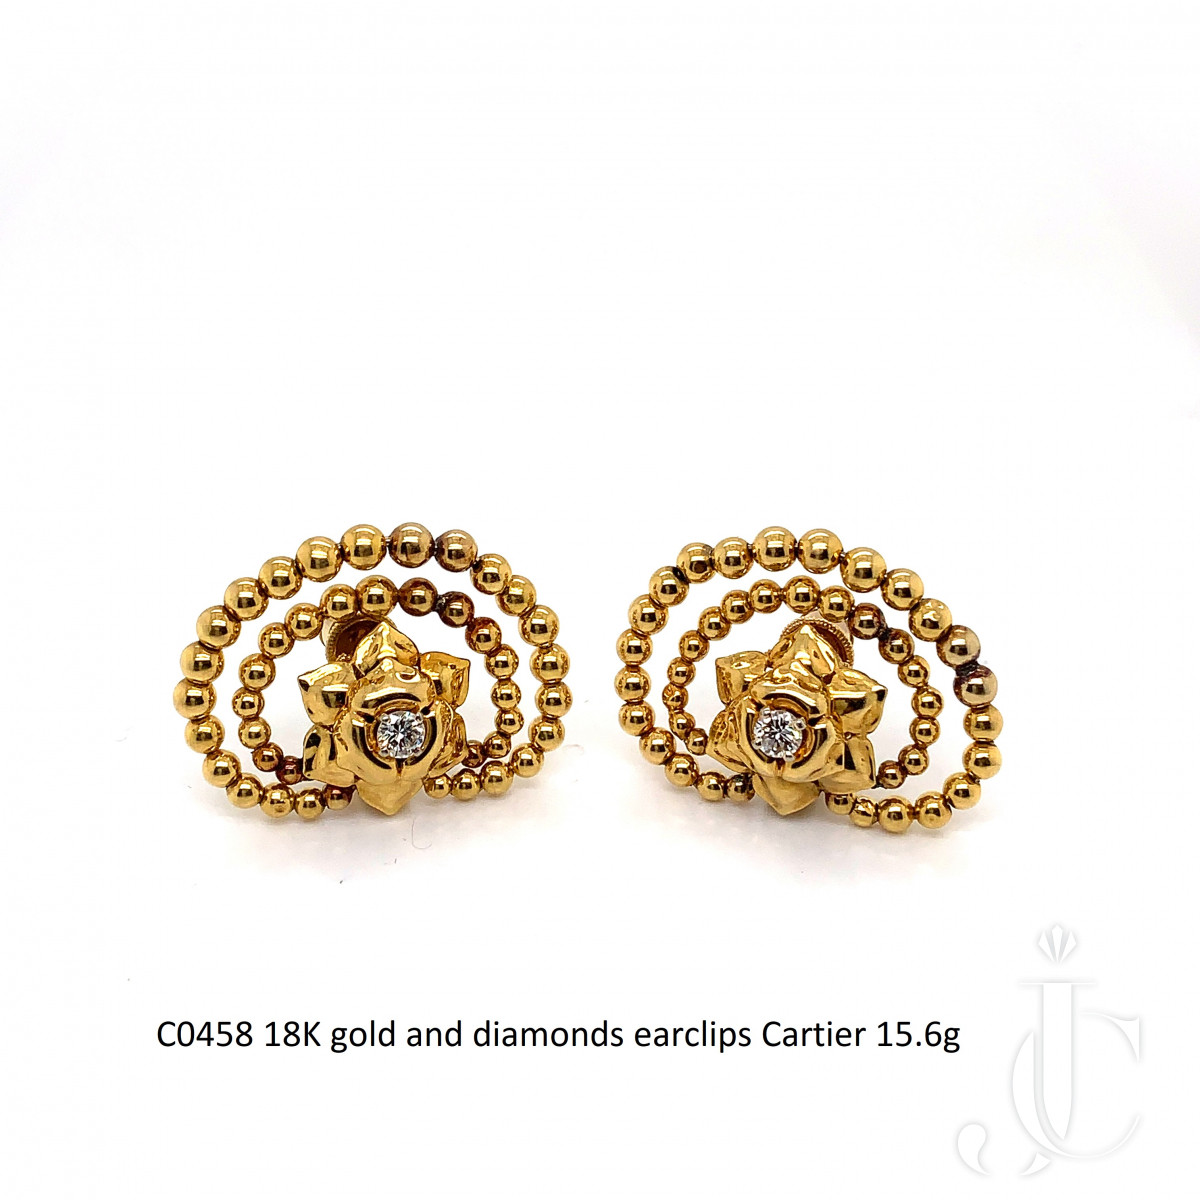 18K gold and diamonds earclips Cartier